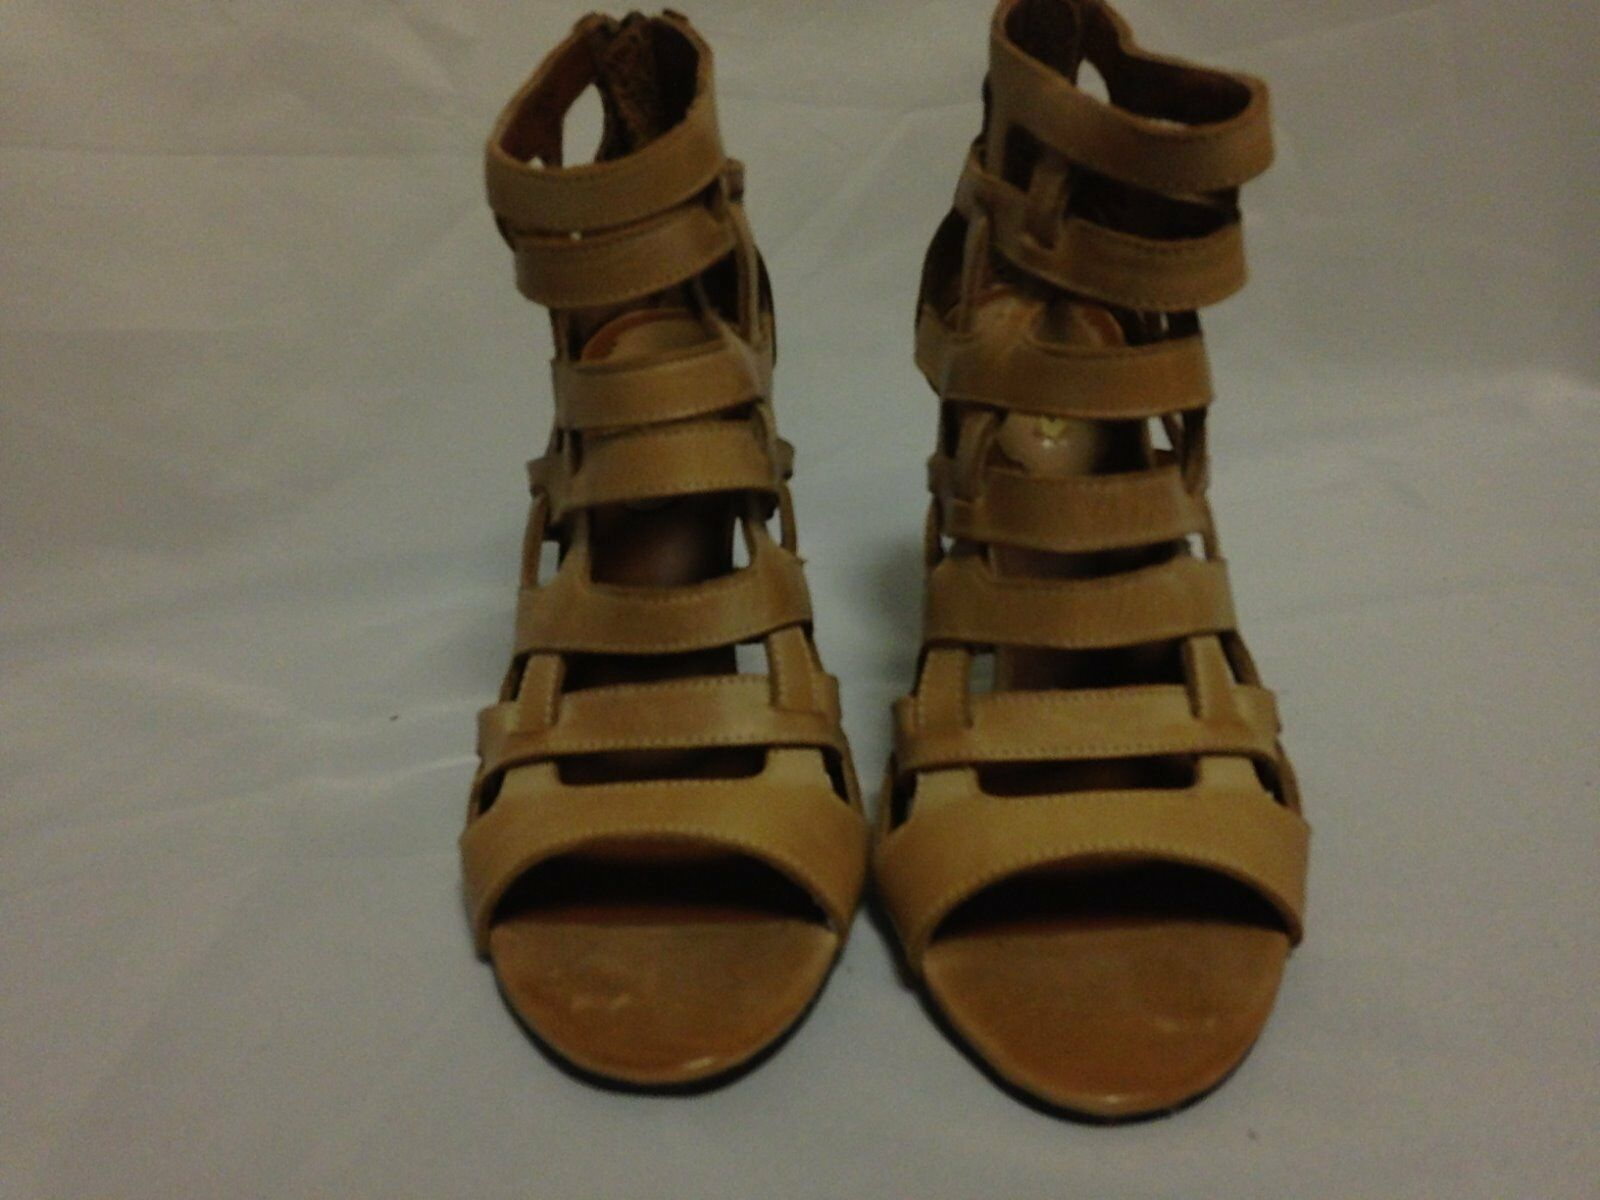 Maxstudio Elaine Caged Ankle Bootie 5.5 M Cuoio Burnish Leder NEU with Defects